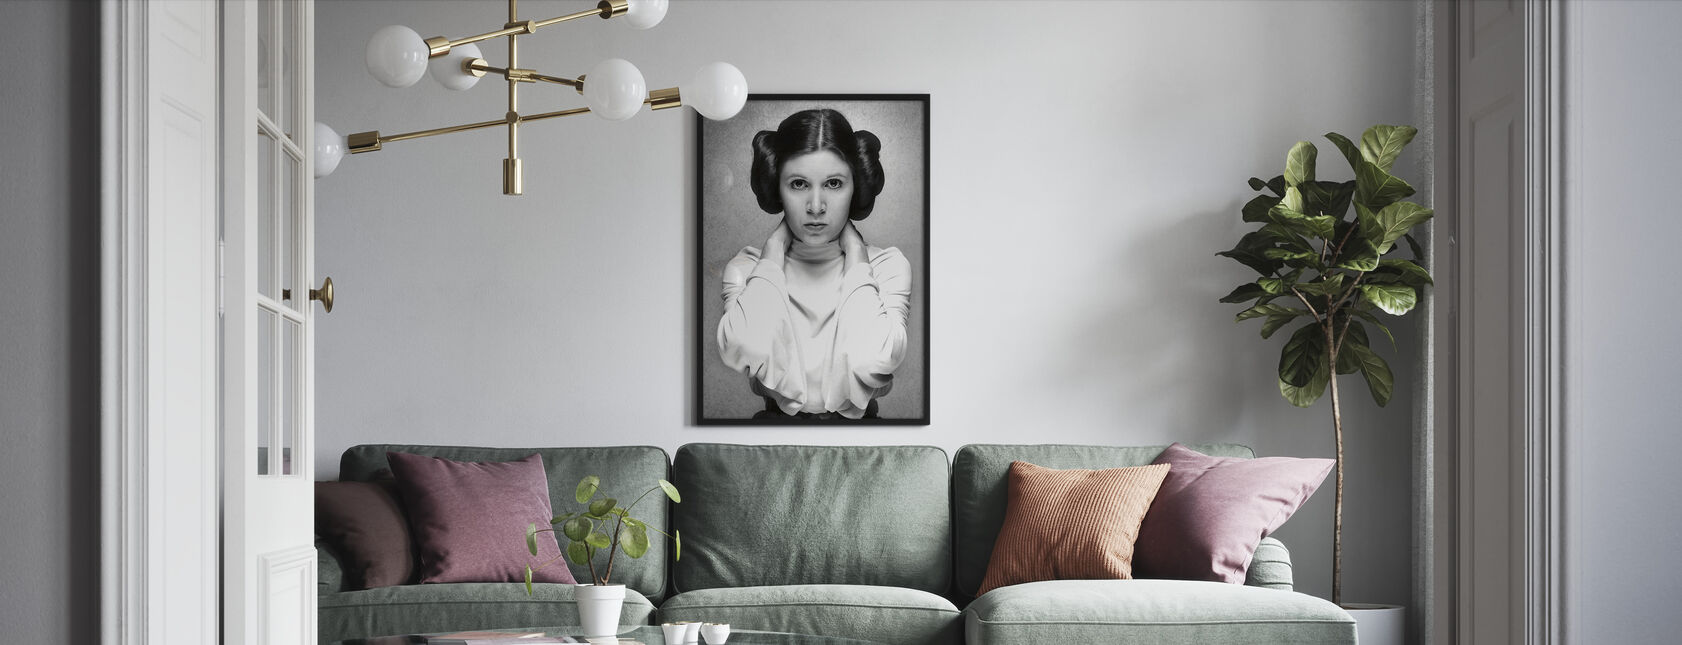 Princess Leia - Carrie Fisher - Framed print - Living Room